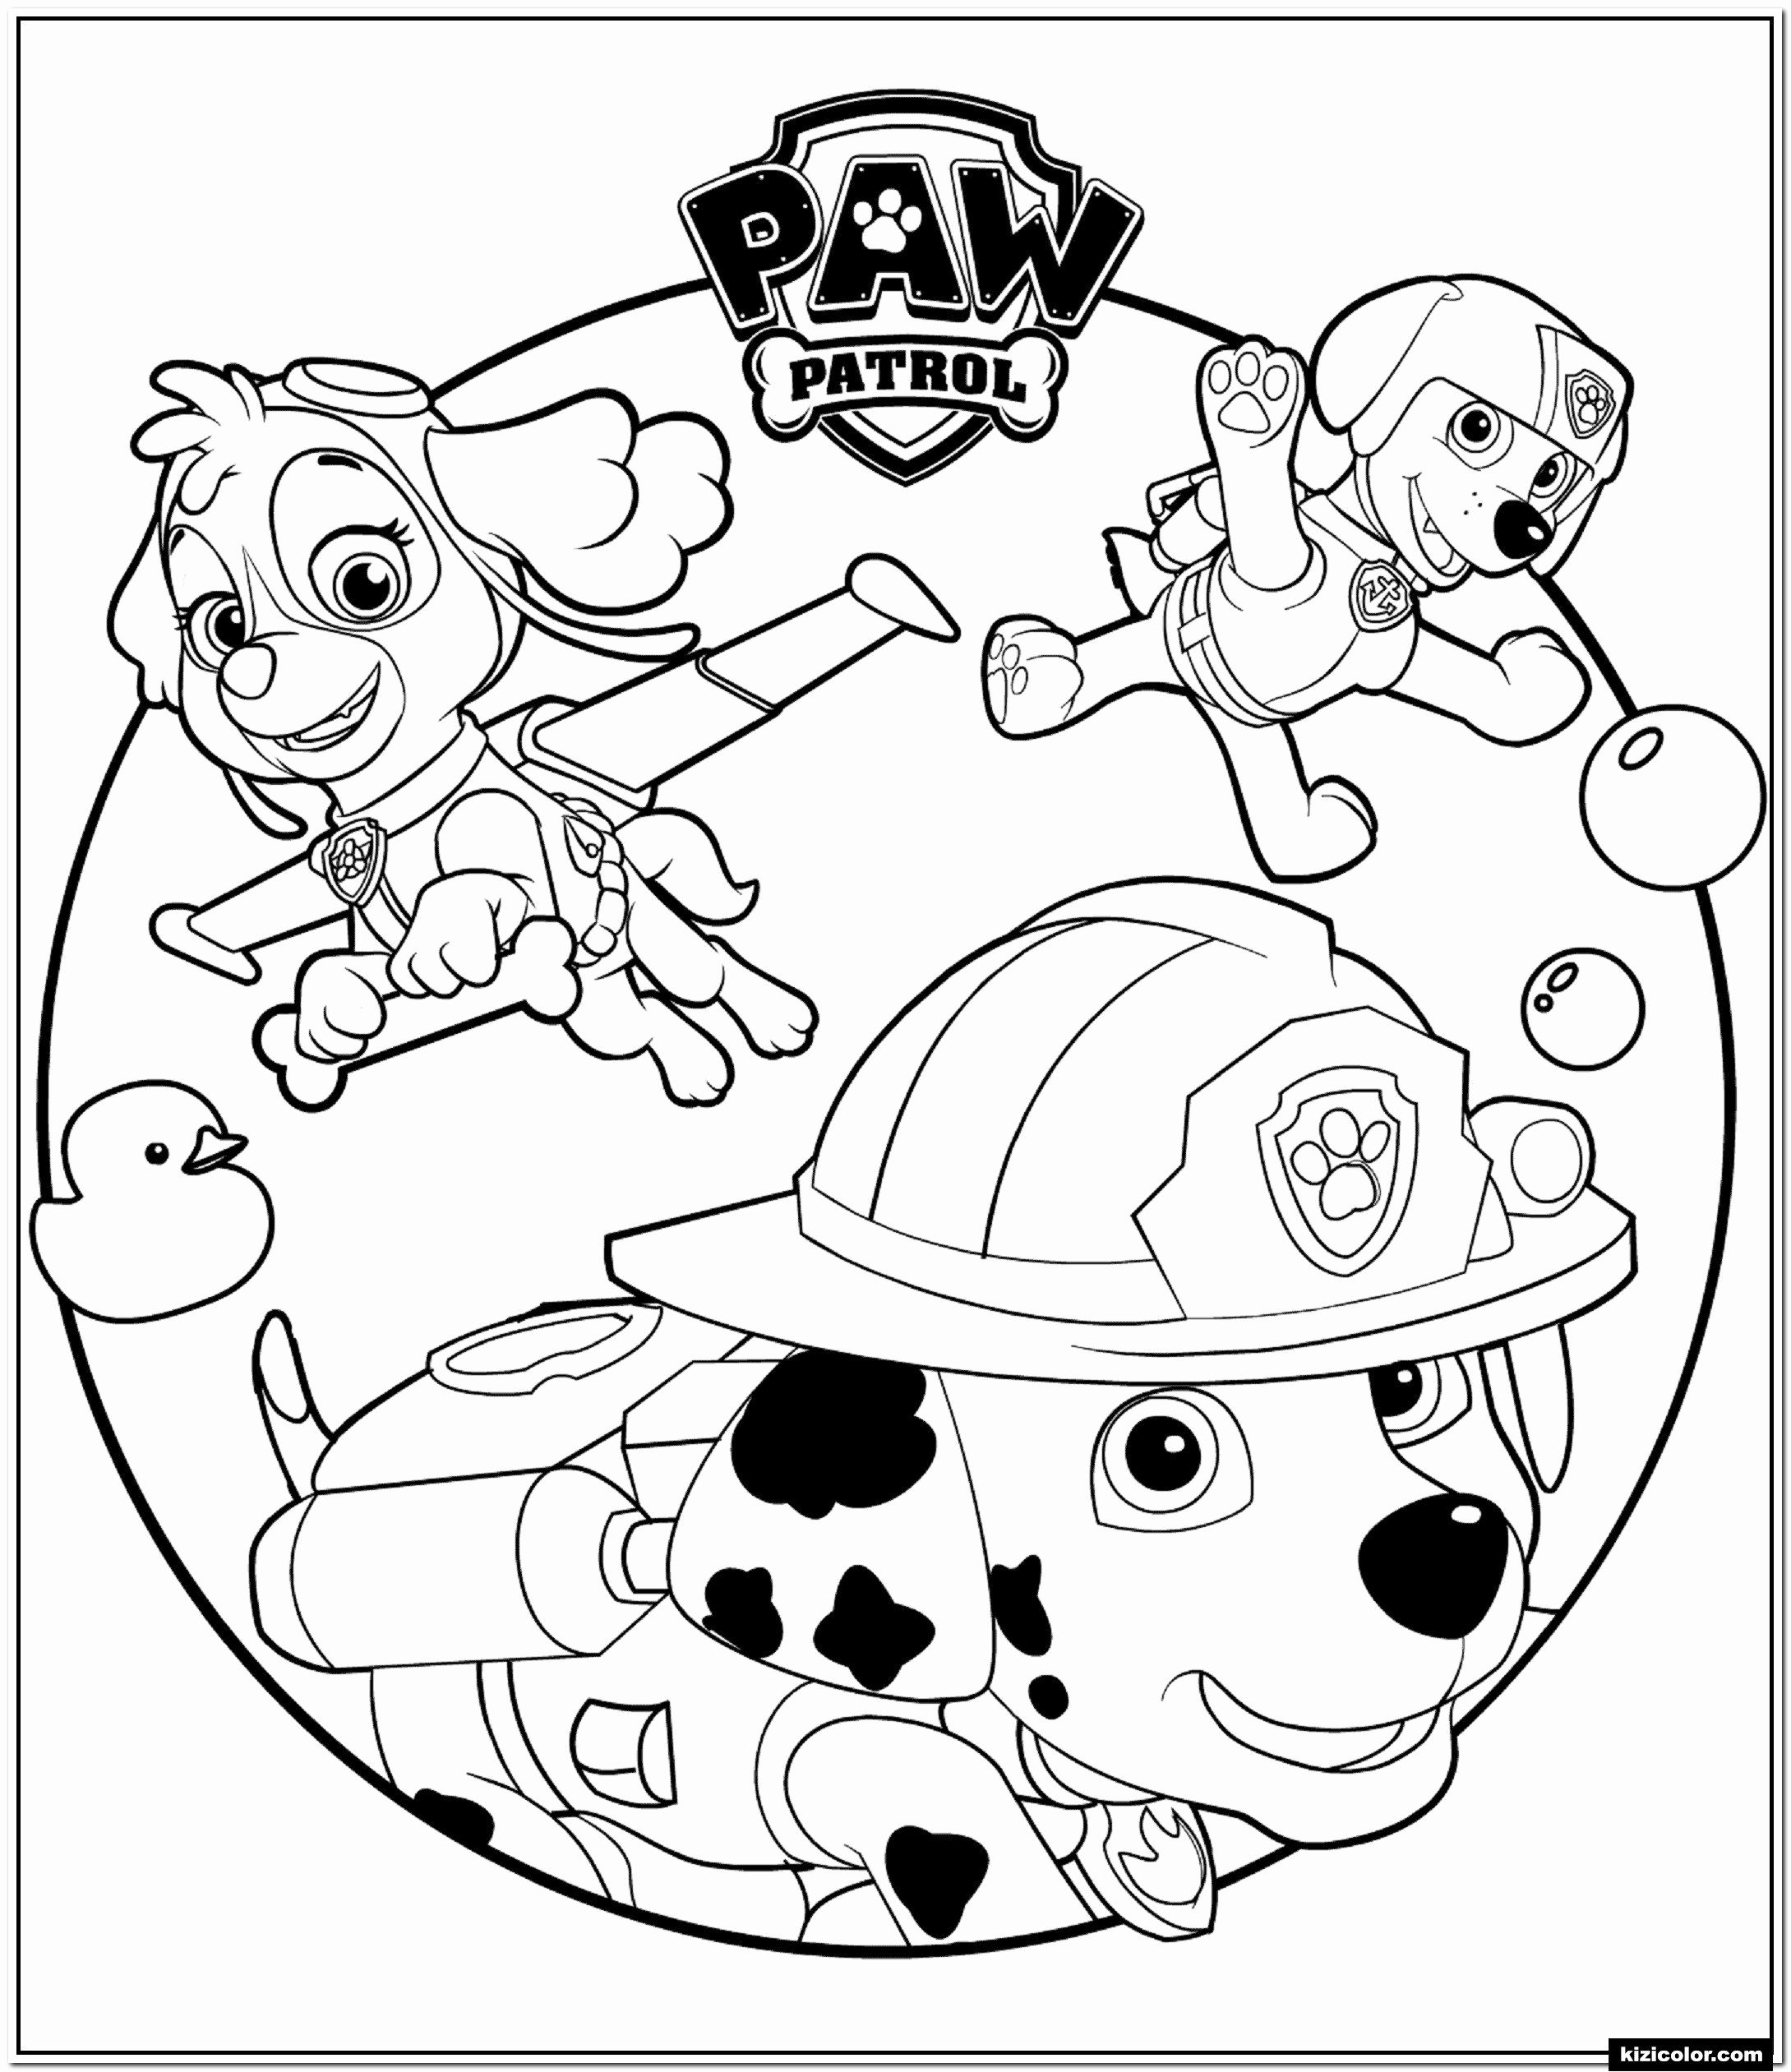 Coloring Animals Youtube Paw Patrol Coloring Paw Patrol Coloring Pages Free Coloring Pages